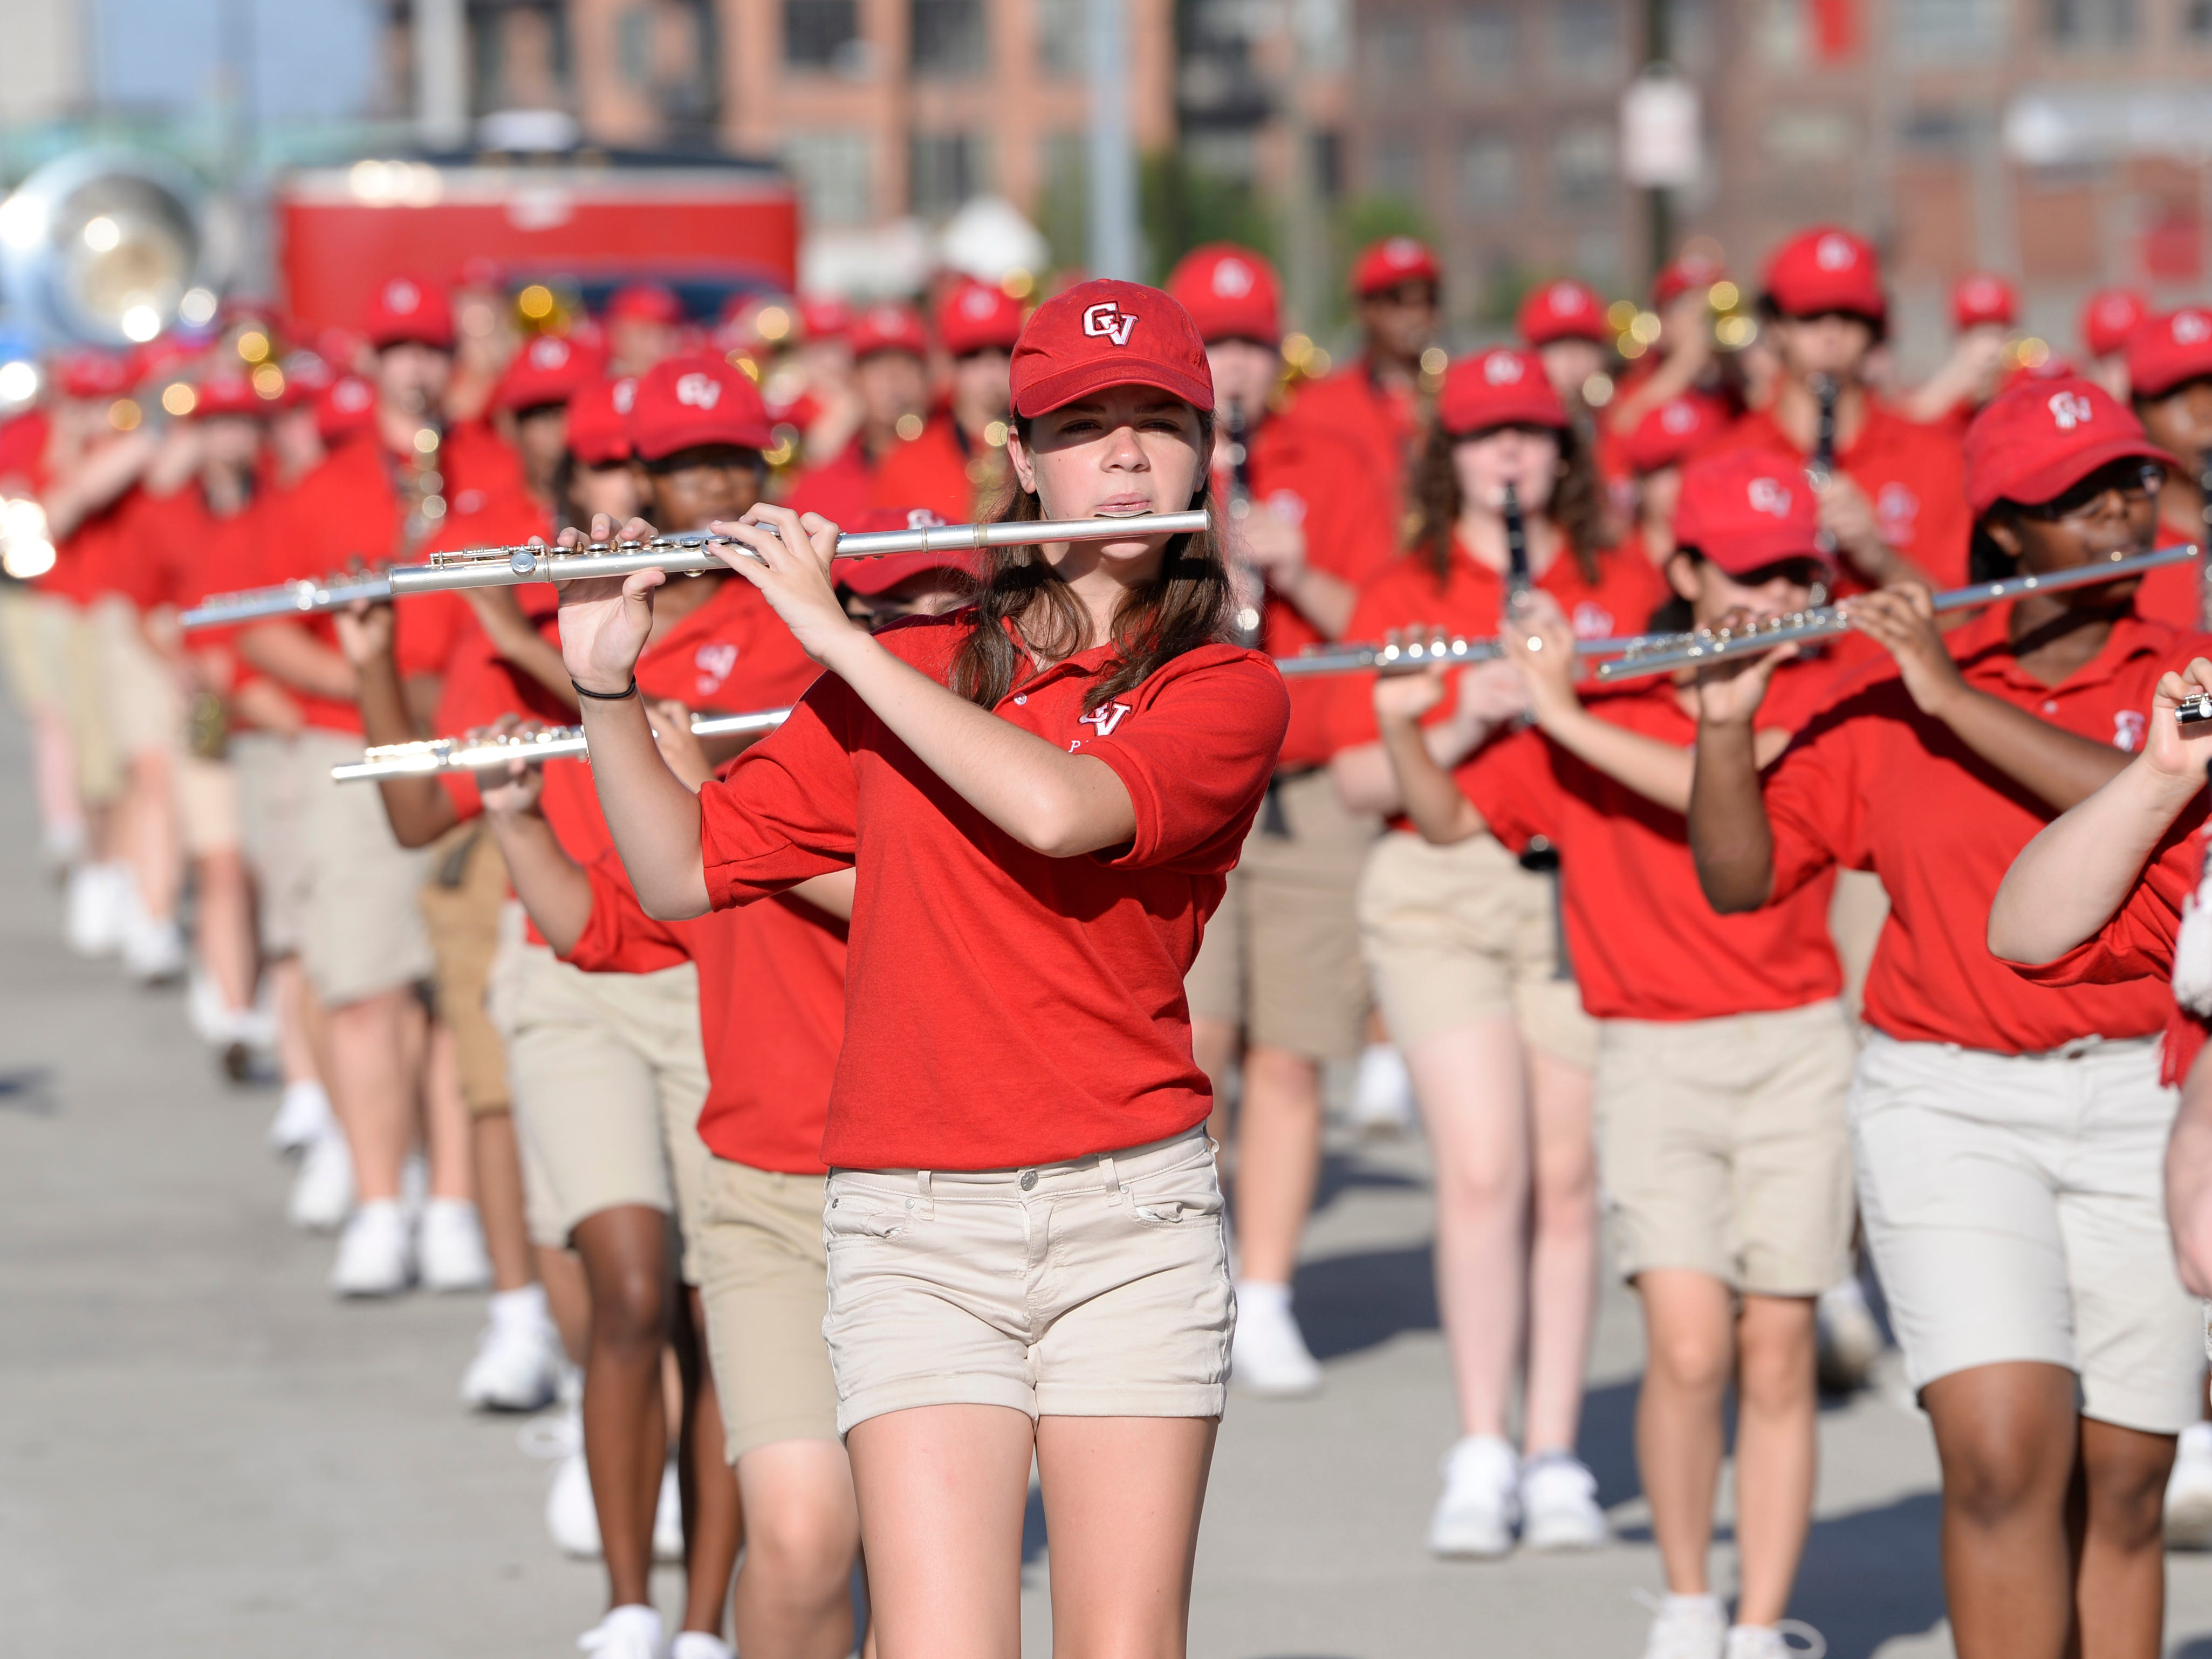 Brianna Harris, 16,  of the Chippewa Valley High School marching band marches along the parade route along Michigan Ave. to Hart Plaza.